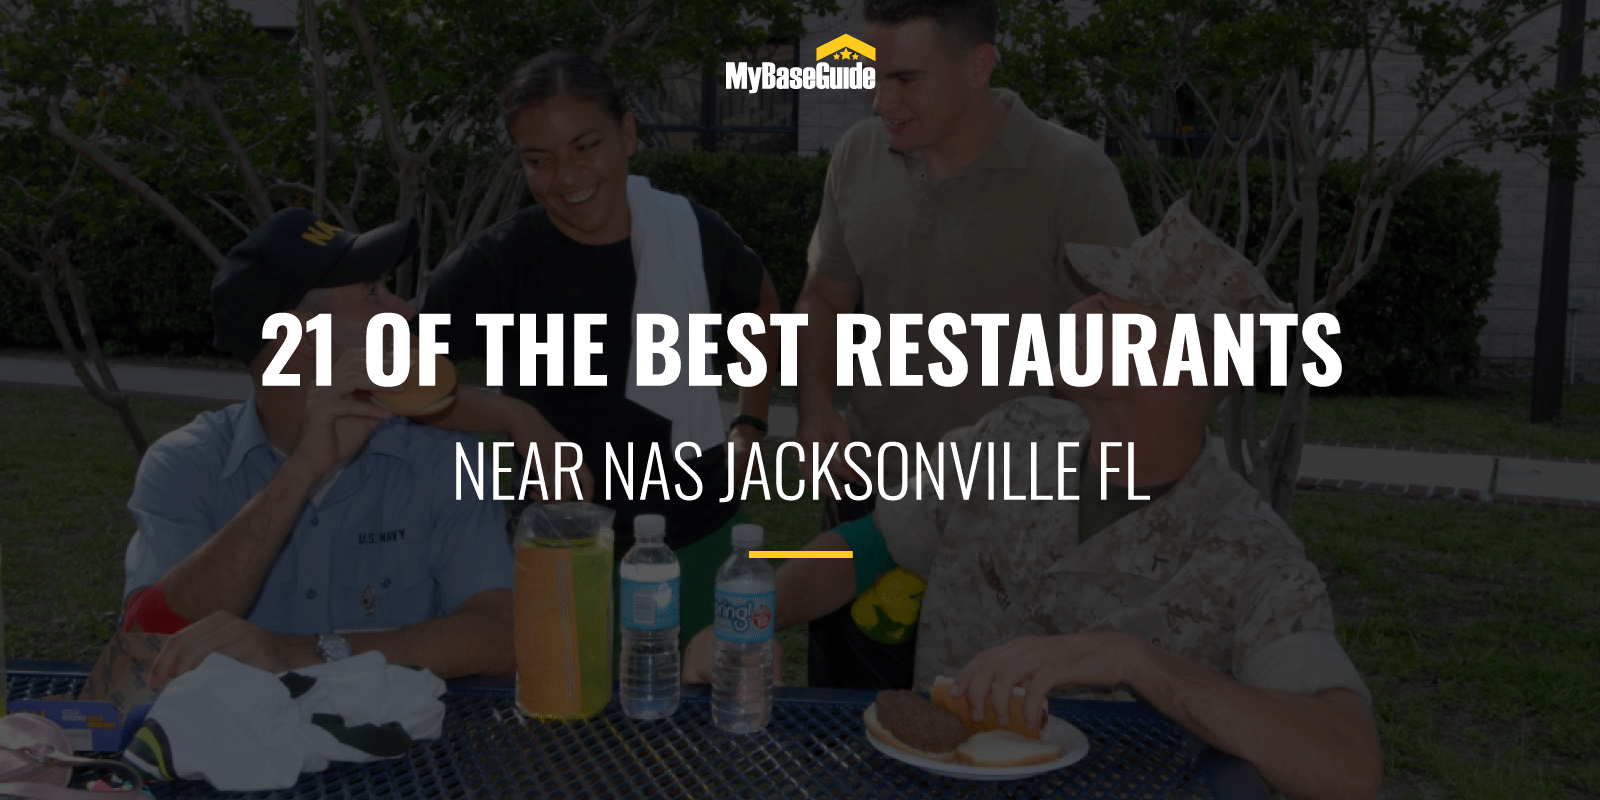 21 Of the Best Restaurants Near NAS Jacksonville FL